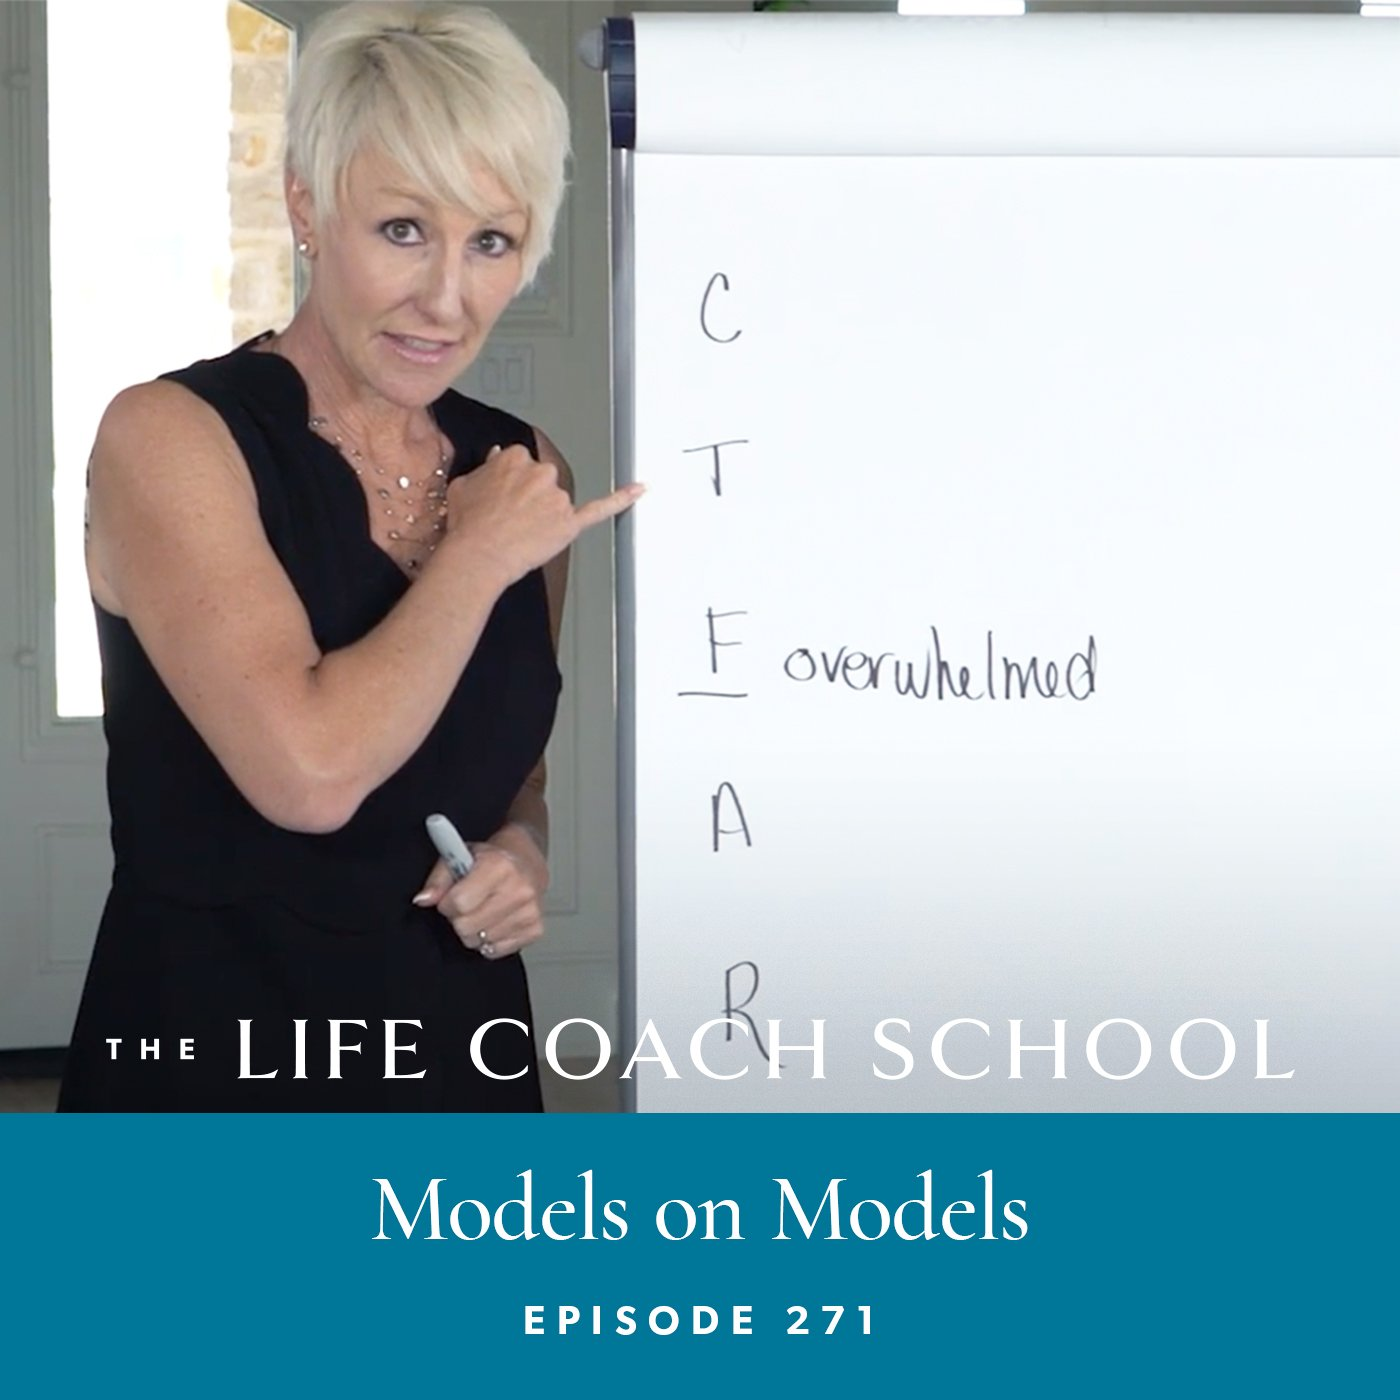 The Life Coach School Podcast with Brooke Castillo | Episode 271 | Models on Models